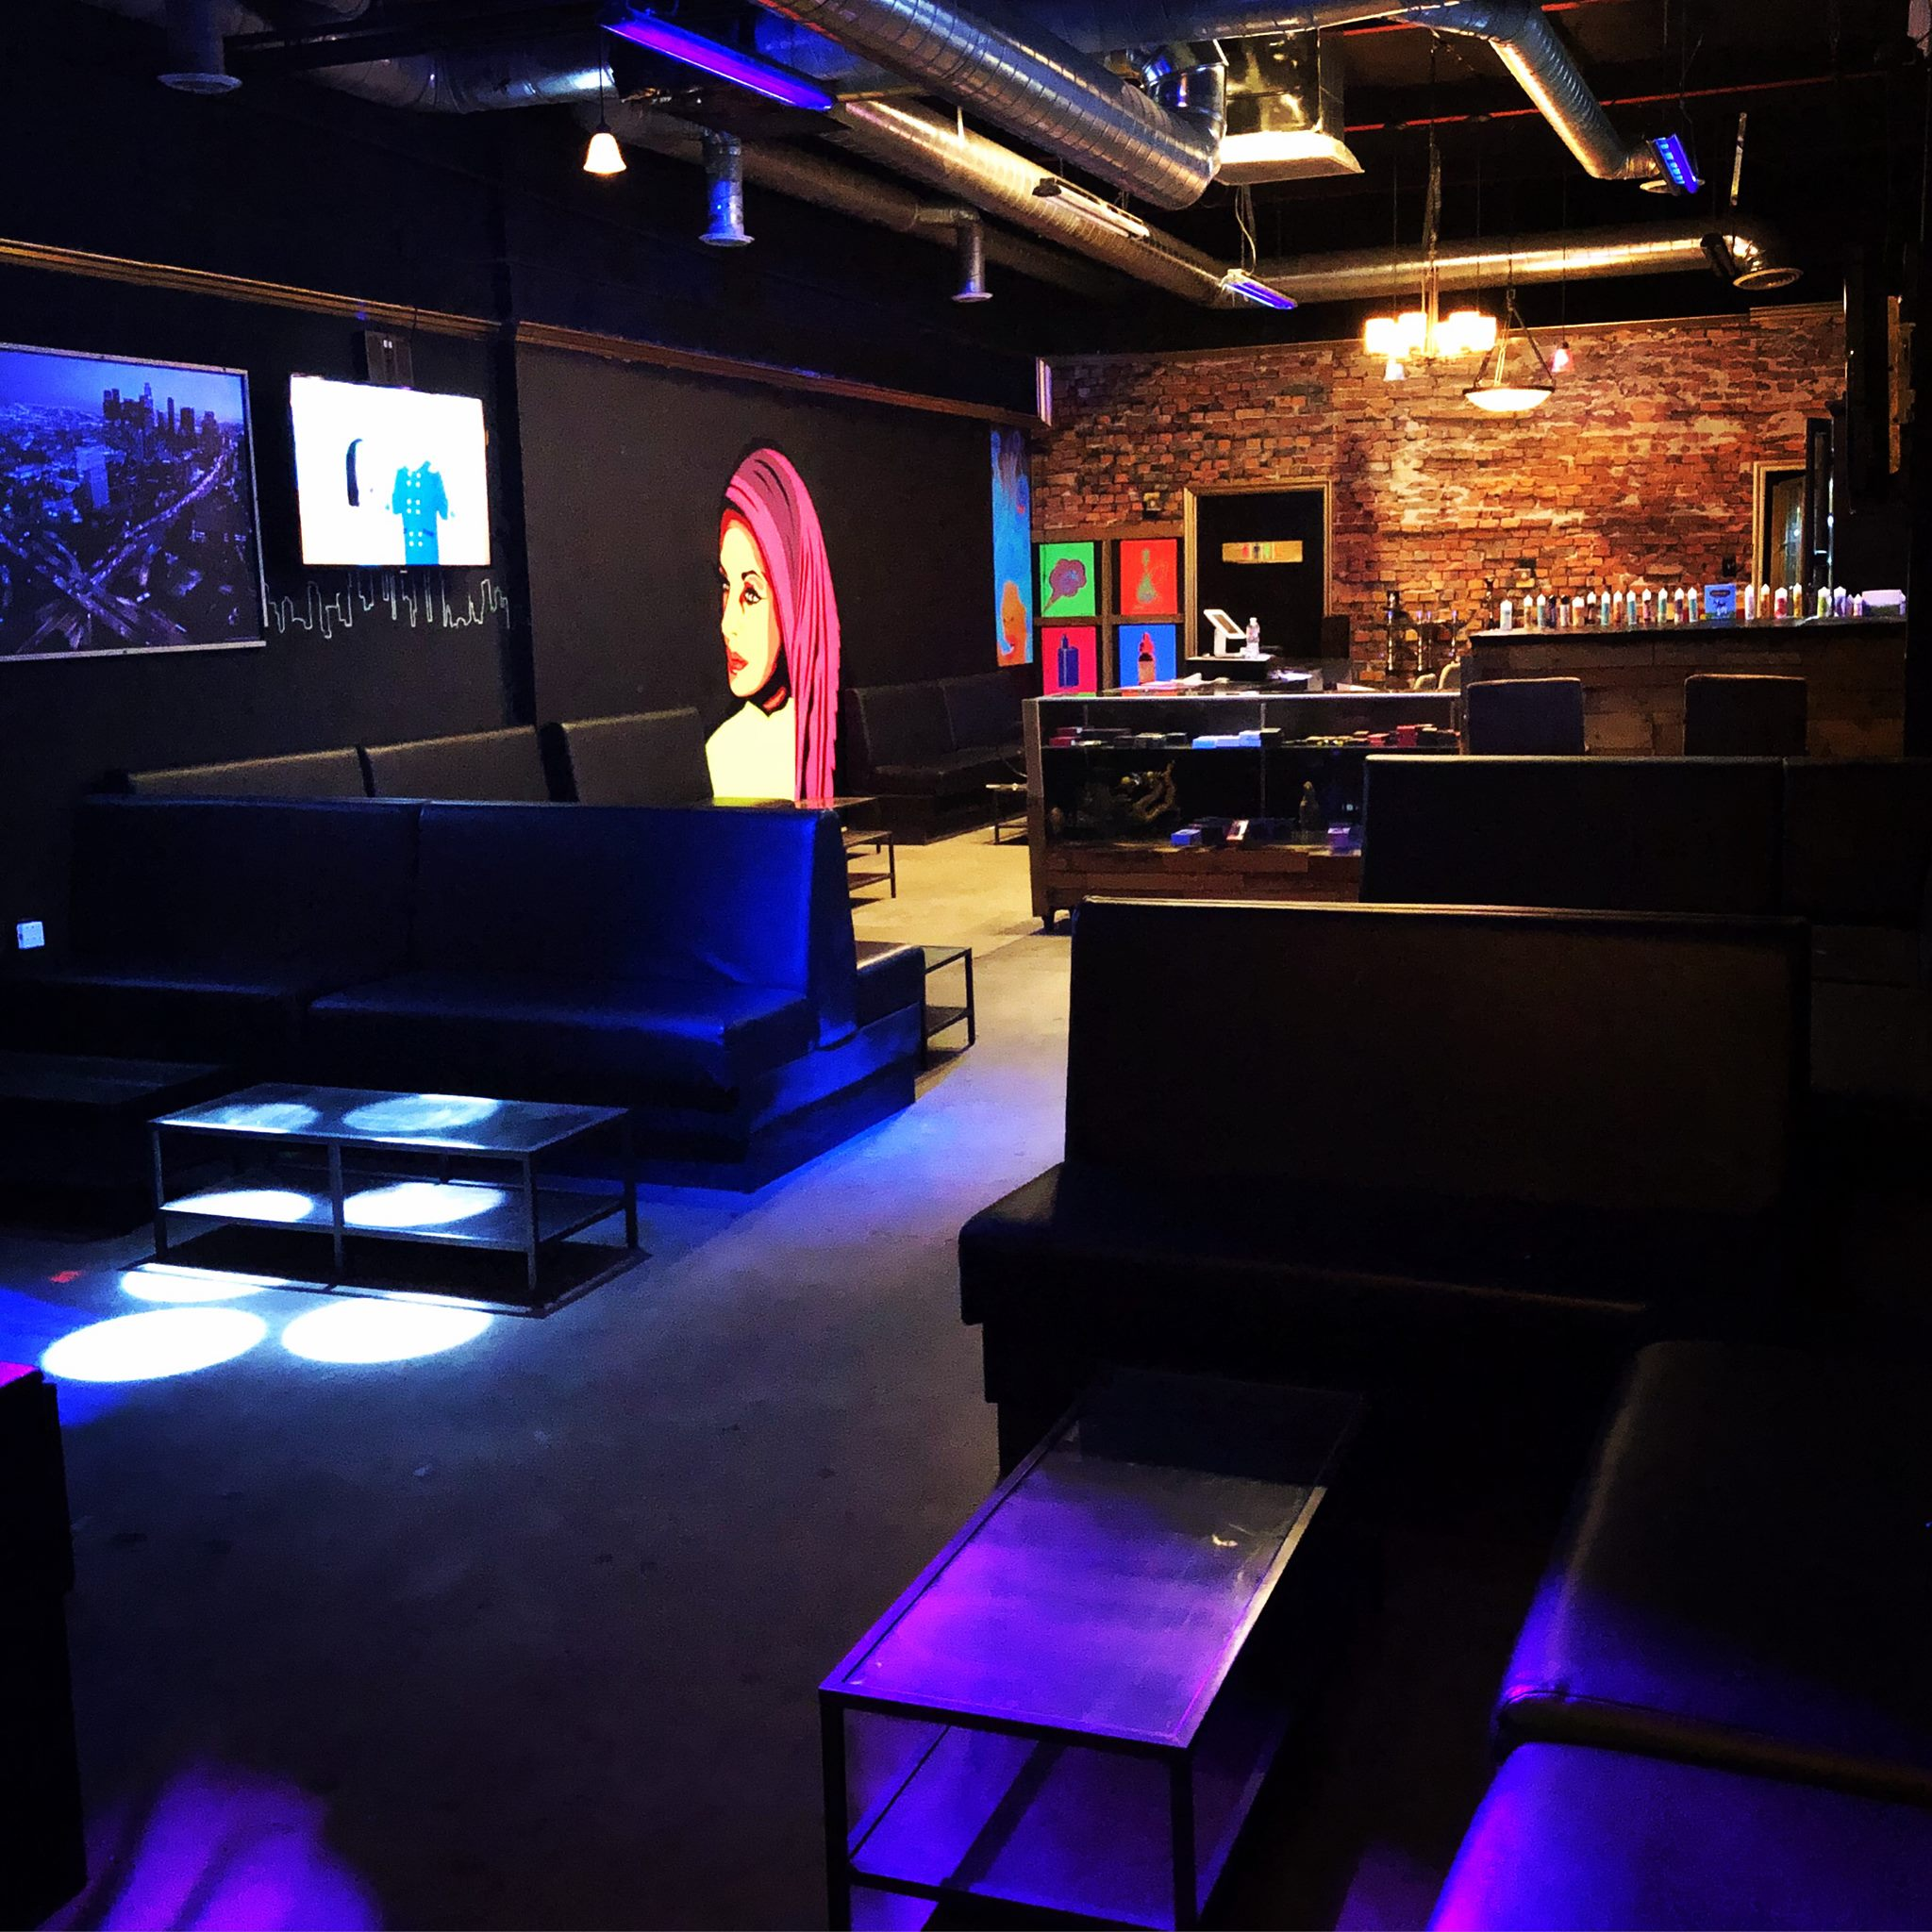 Interior of the Hookah spot is lit dark with a black light and an exposed brick wall in the back